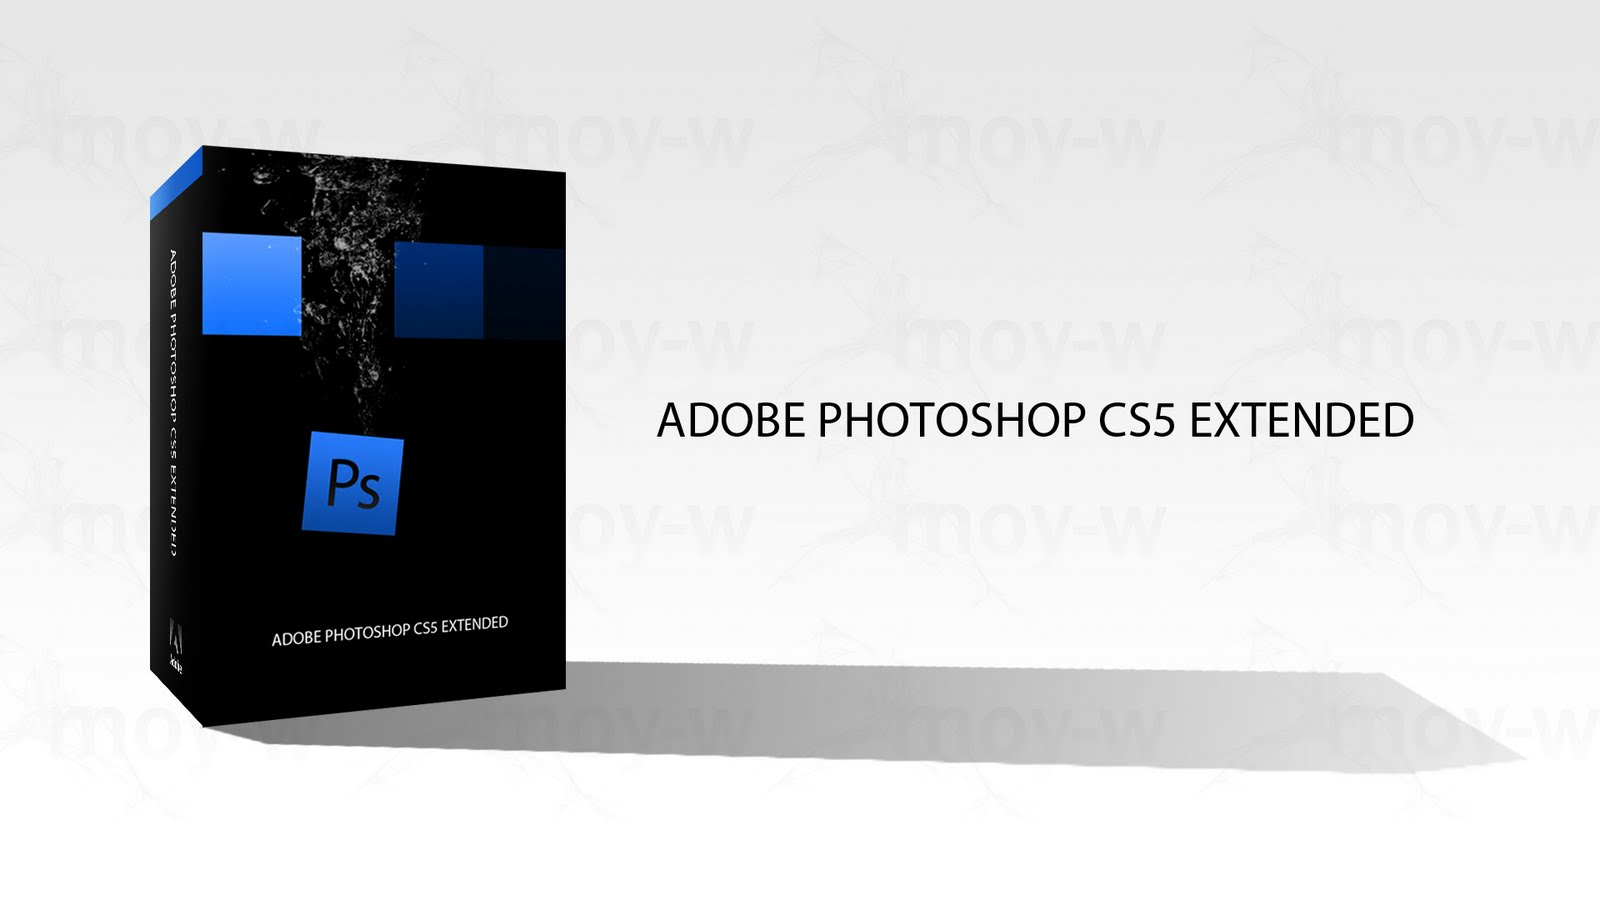 Portable Photoshop Adobe Photoshop Cs4 Ita Portable Download Pinglelen